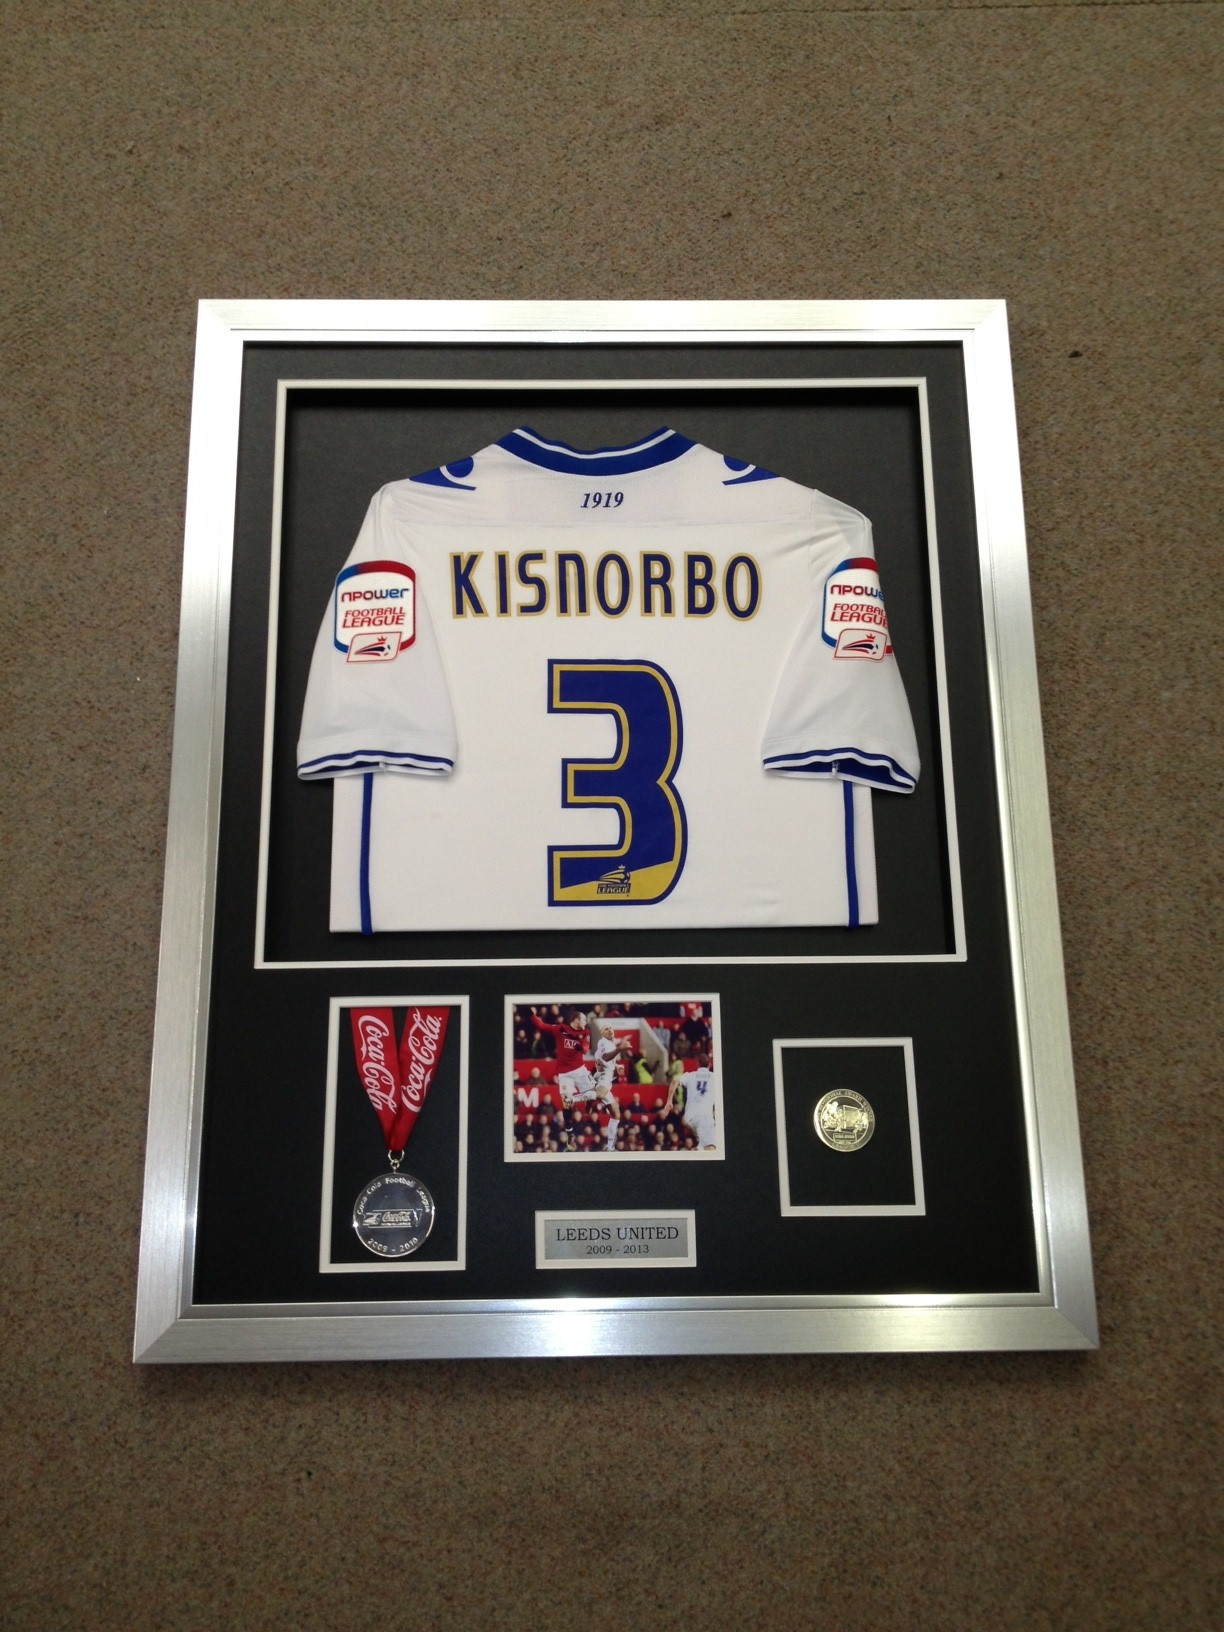 kisnorbo framed shirt